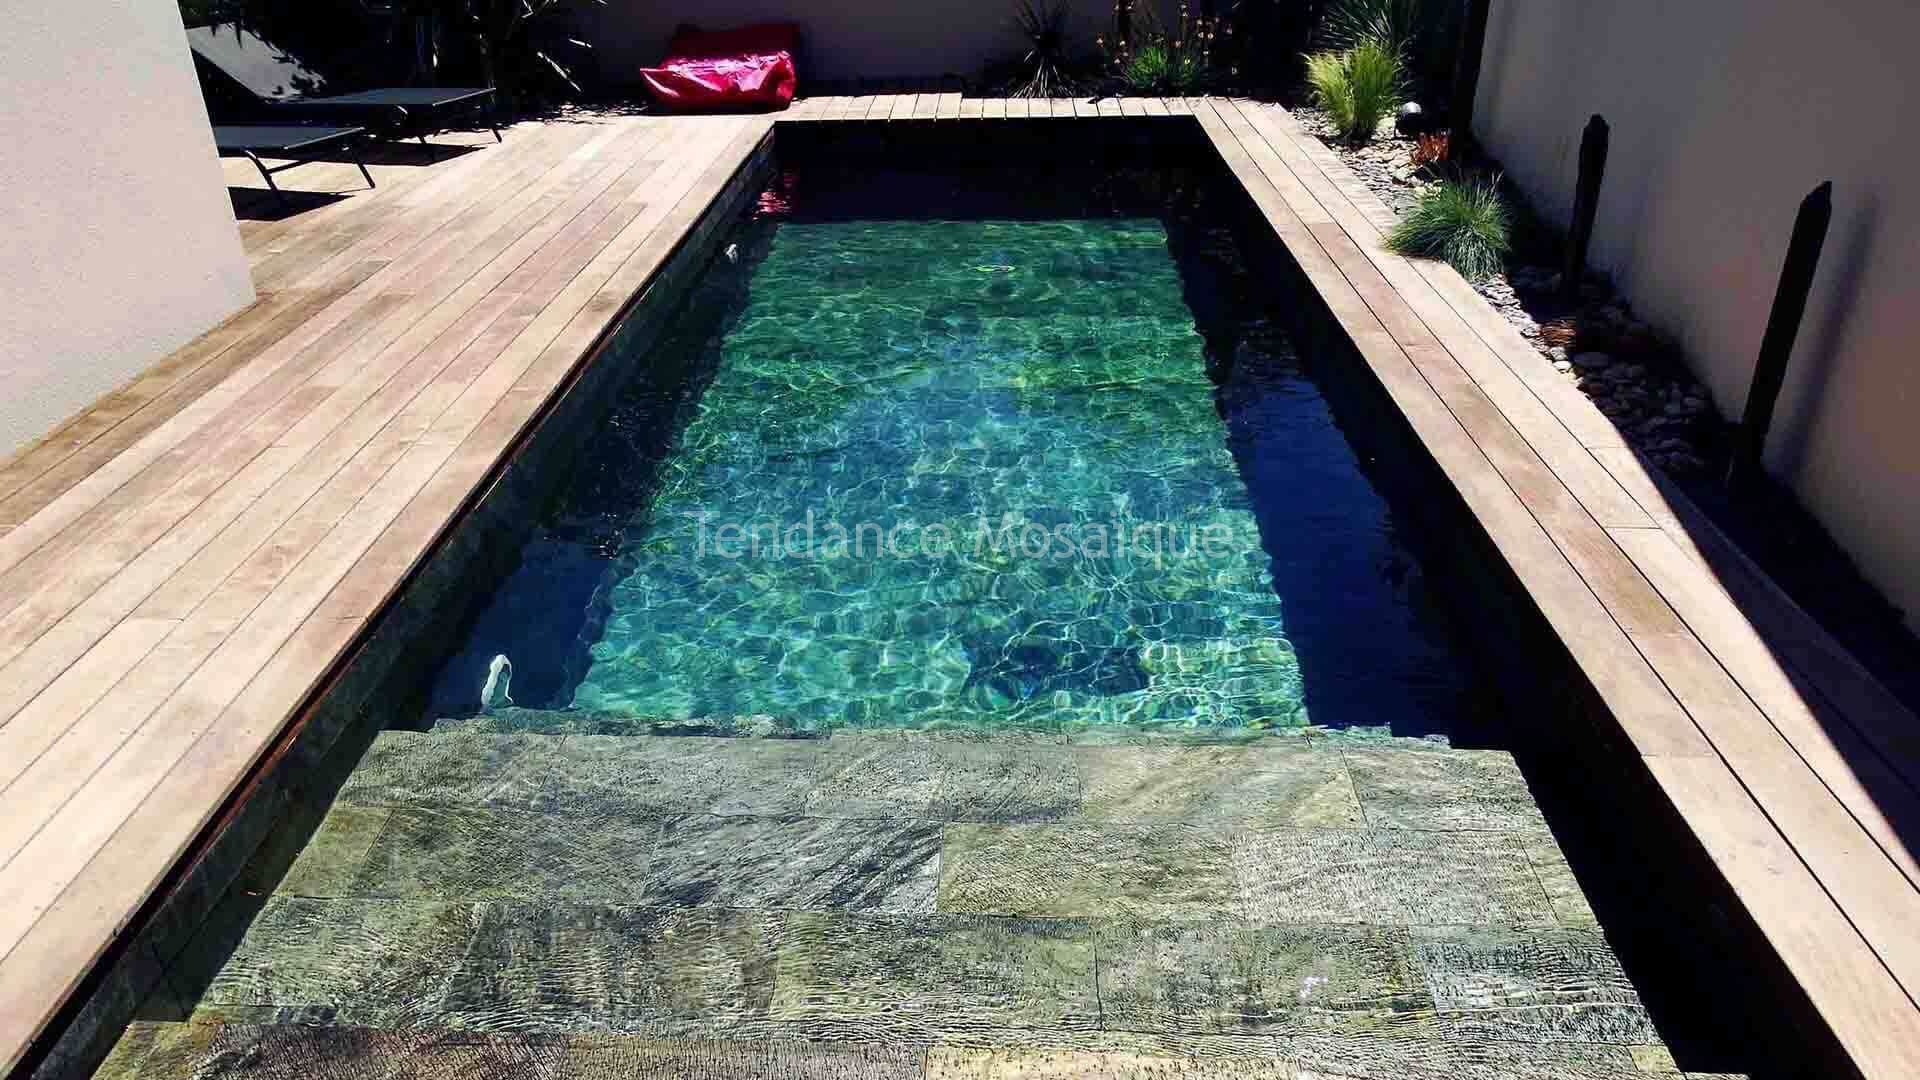 piscine en pierre naturelle quartzite r f rence silver dream carrelage piscine. Black Bedroom Furniture Sets. Home Design Ideas